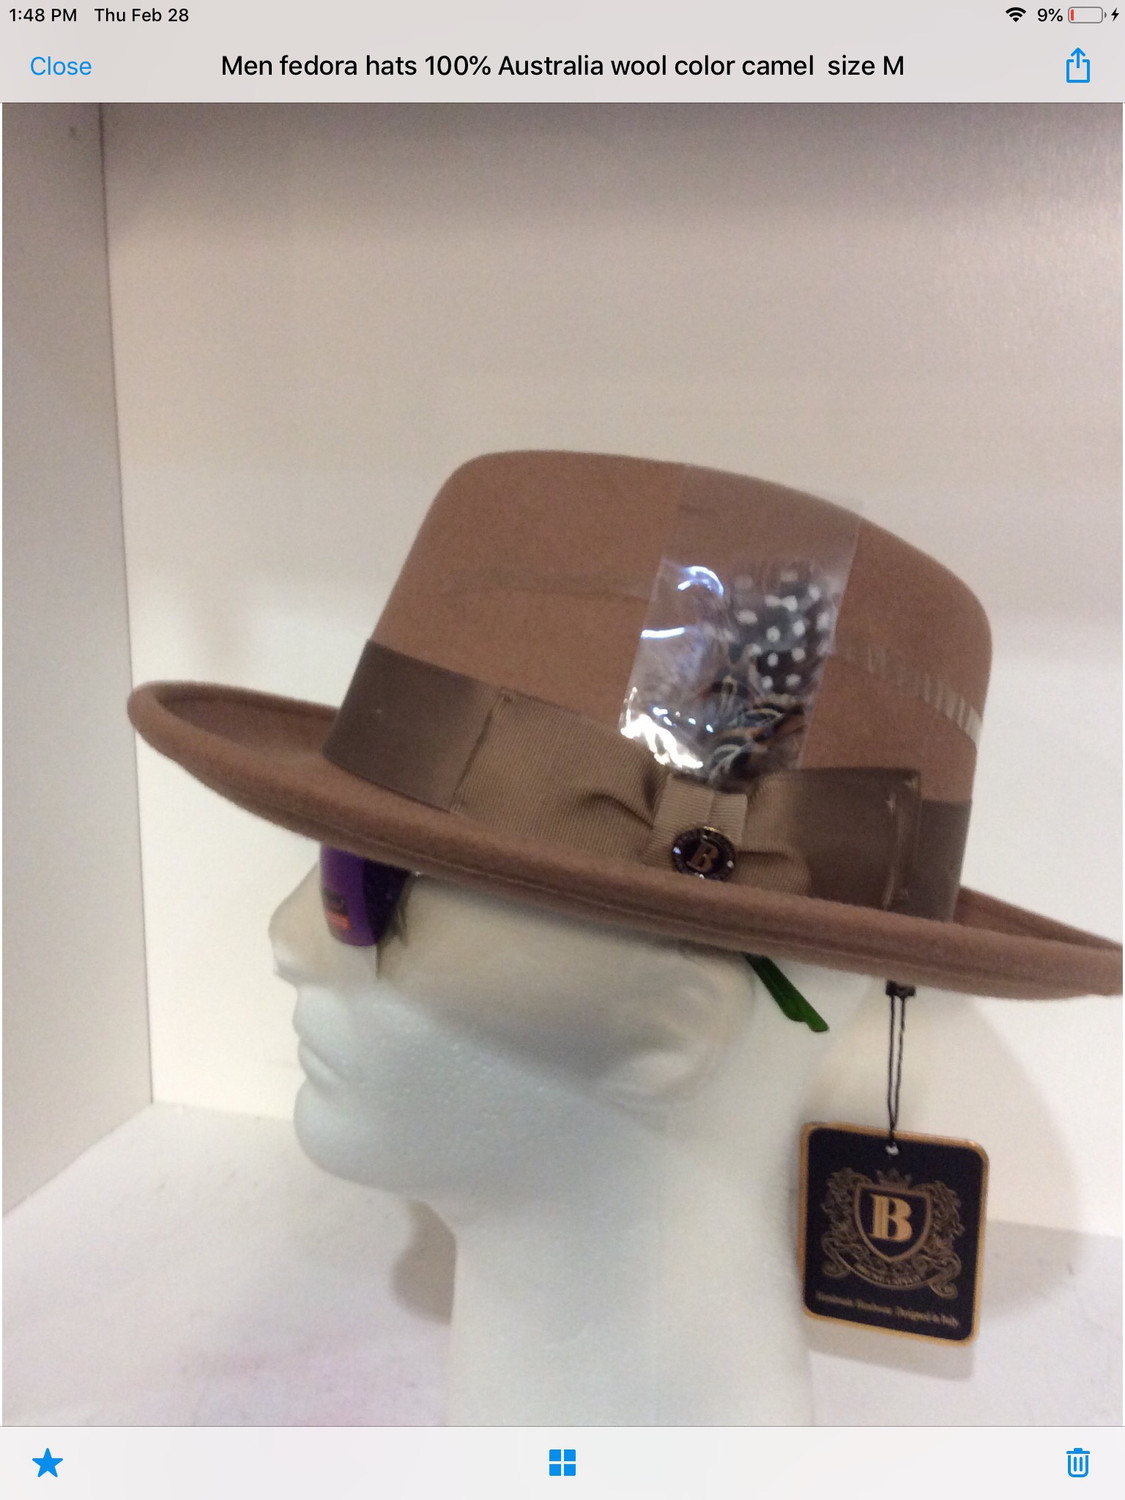 Men fedora hats 100% Australia wool color camel size L Bruno Capelo